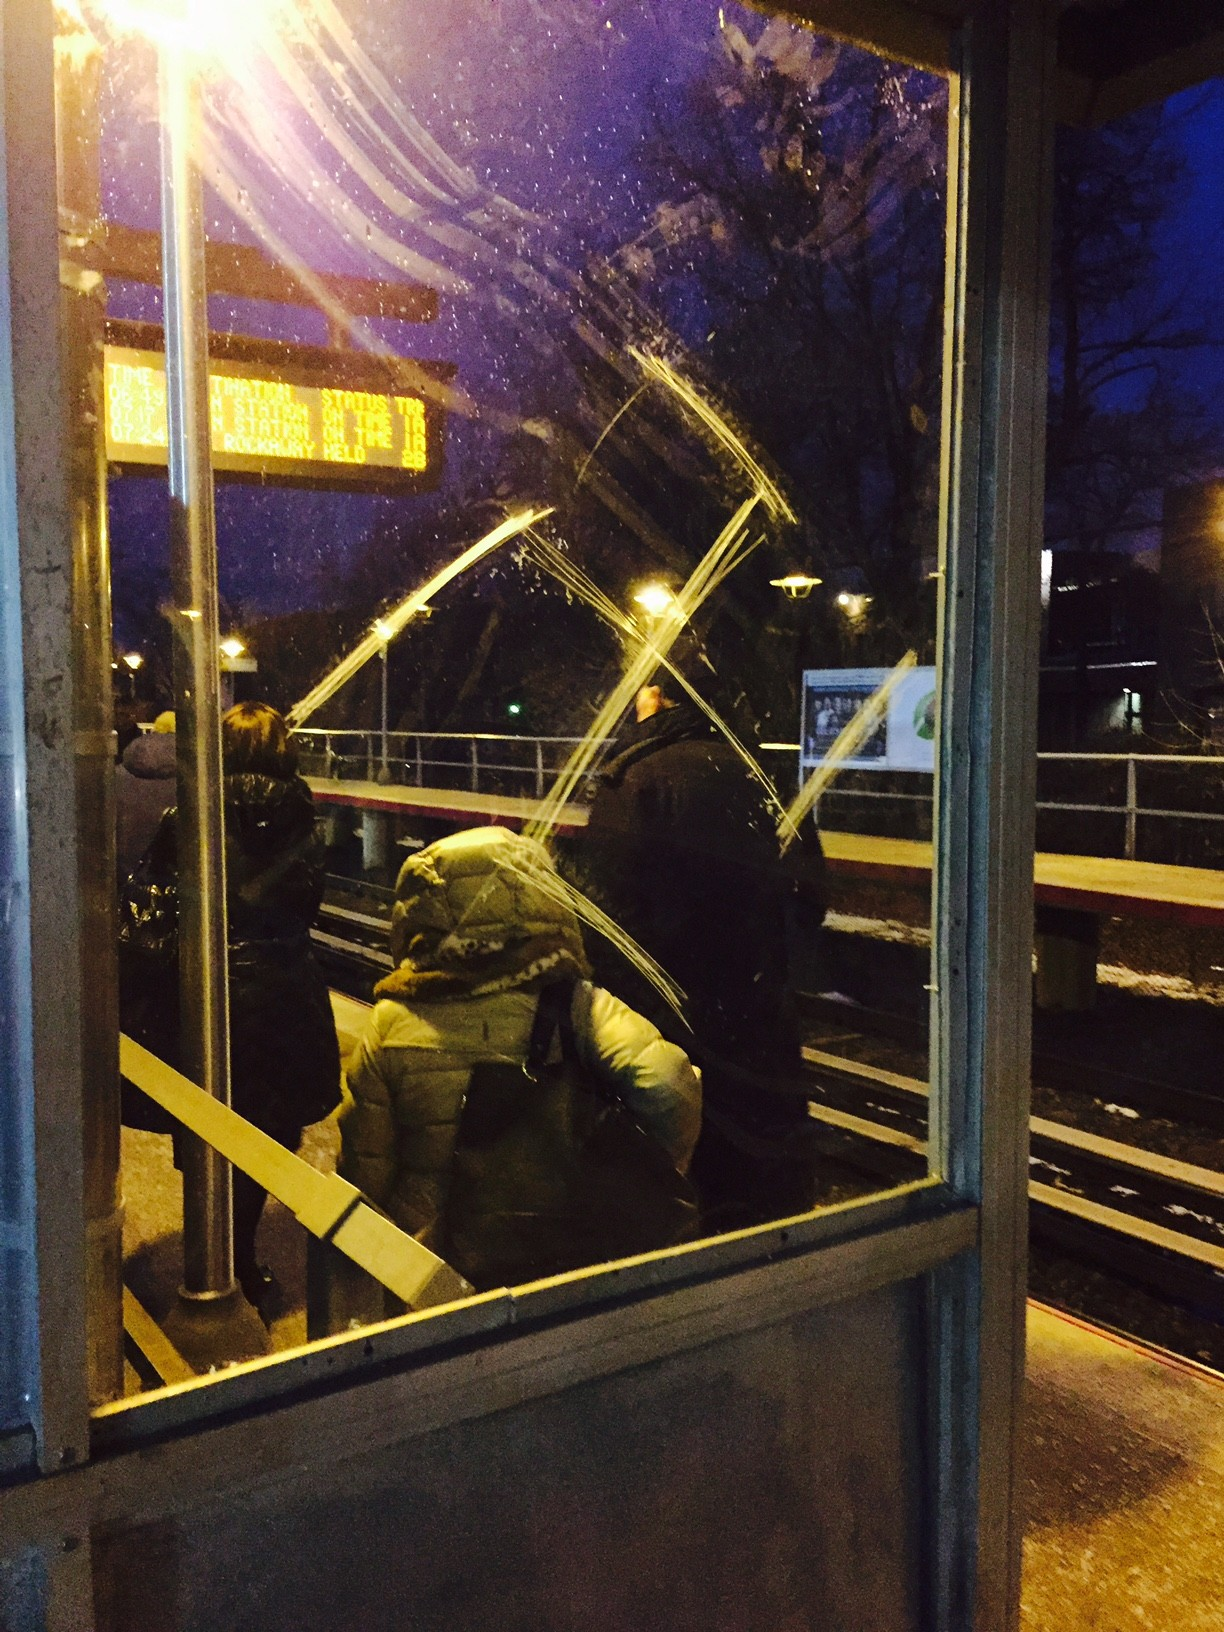 Security cameras are to be installed at the Cedarhurst LIRR station later this year. Above, a platform shelter panel defaced last month.